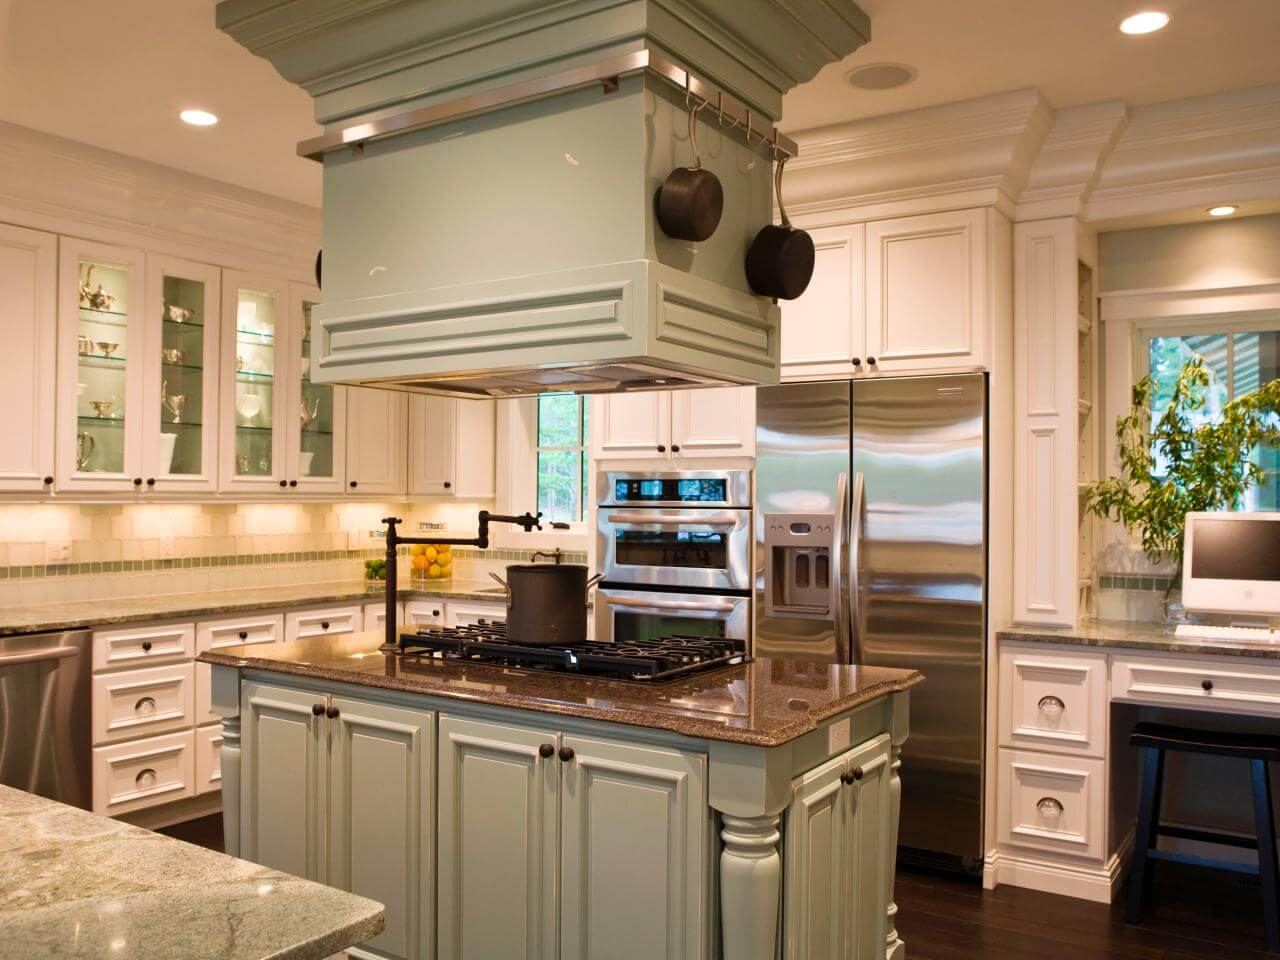 Gourmet kitchen homes for sale in fairhope daphne spanish fort alabama movetobaldwincounty com urban property